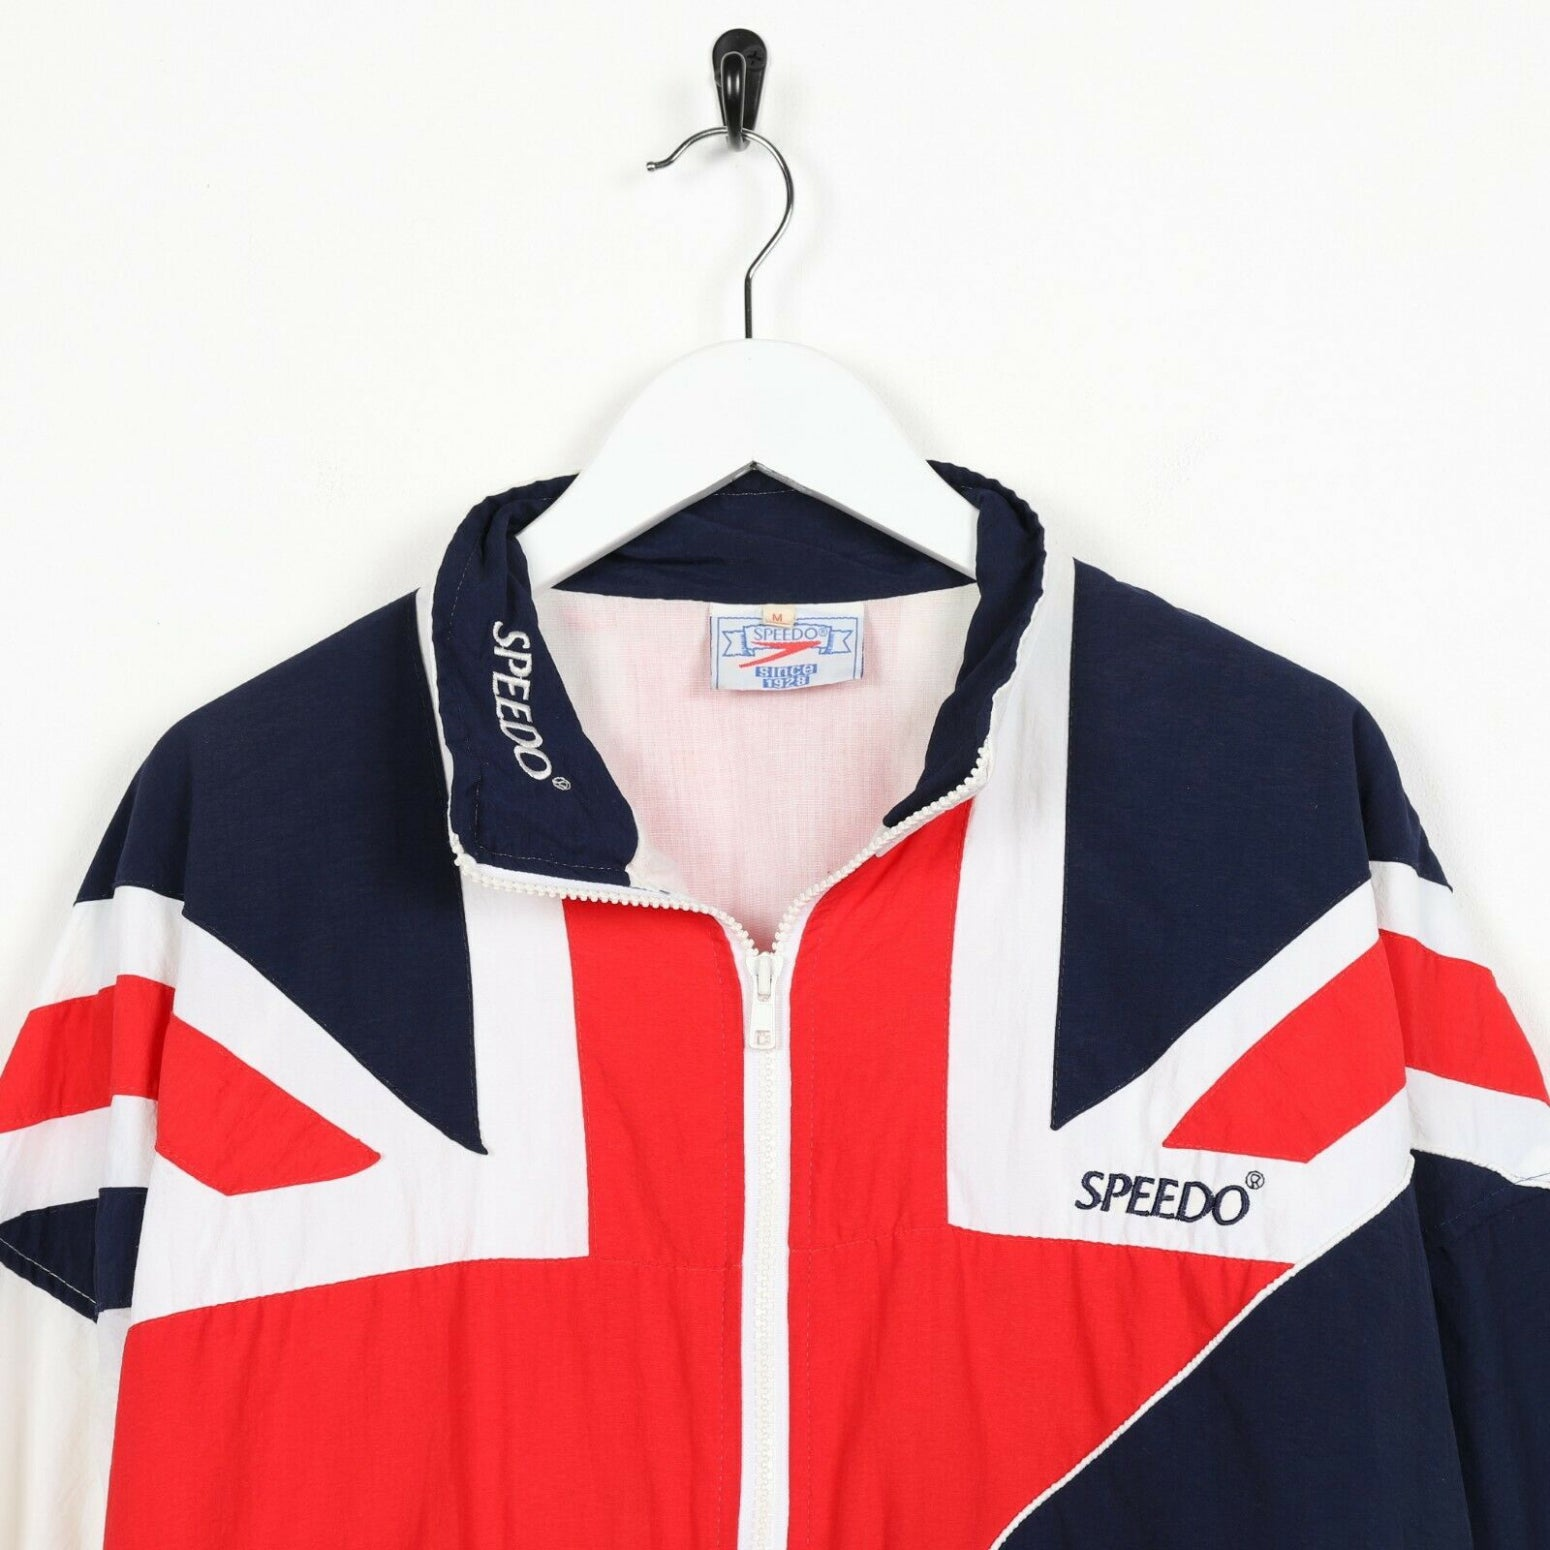 Vintage SPEEDO Abstract United Kingdom Flag Windbreaker Jacket | Medium M